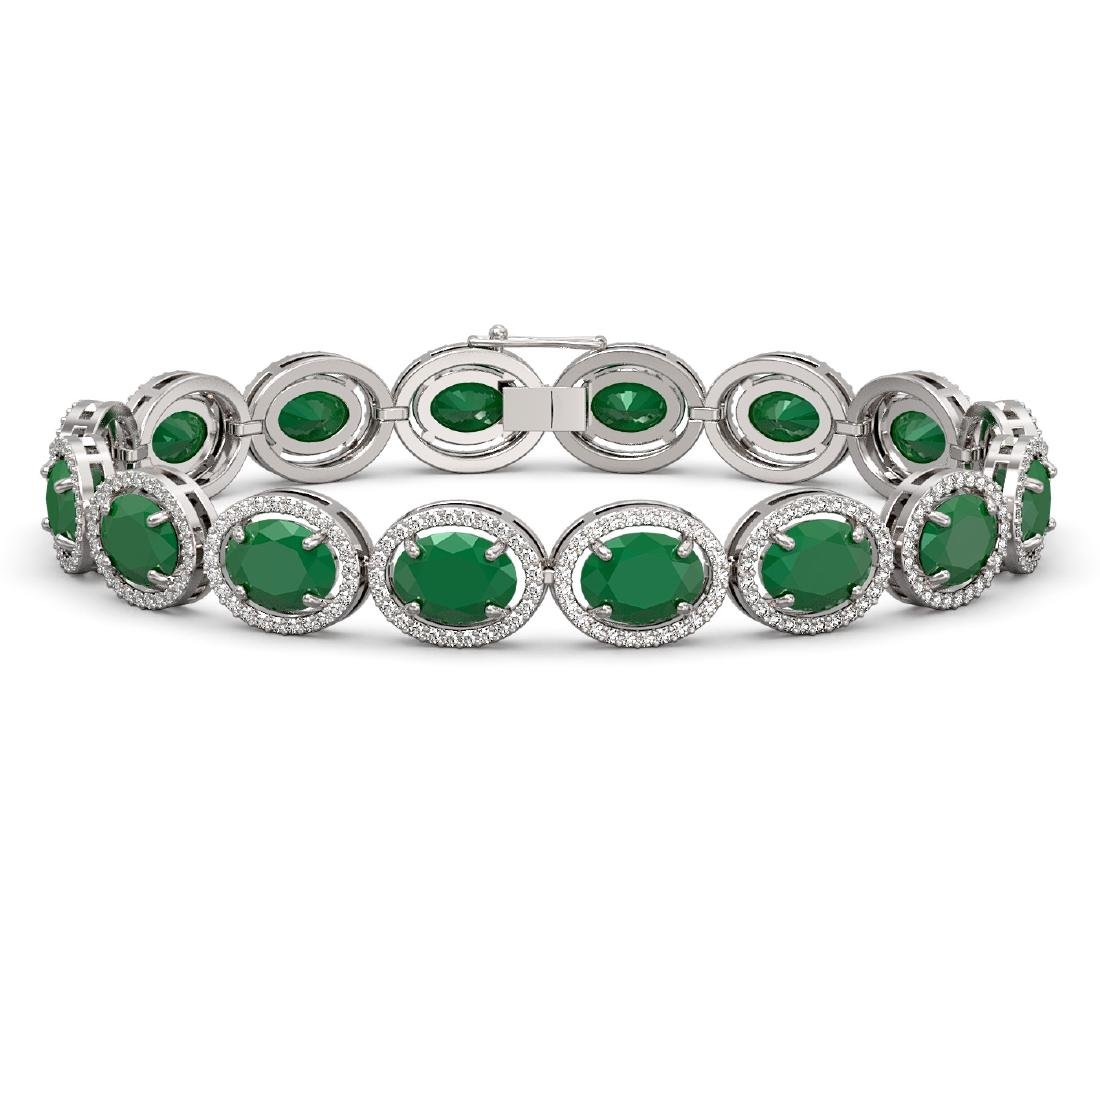 31.79 CTW Emerald & Diamond Halo Bracelet 10K White